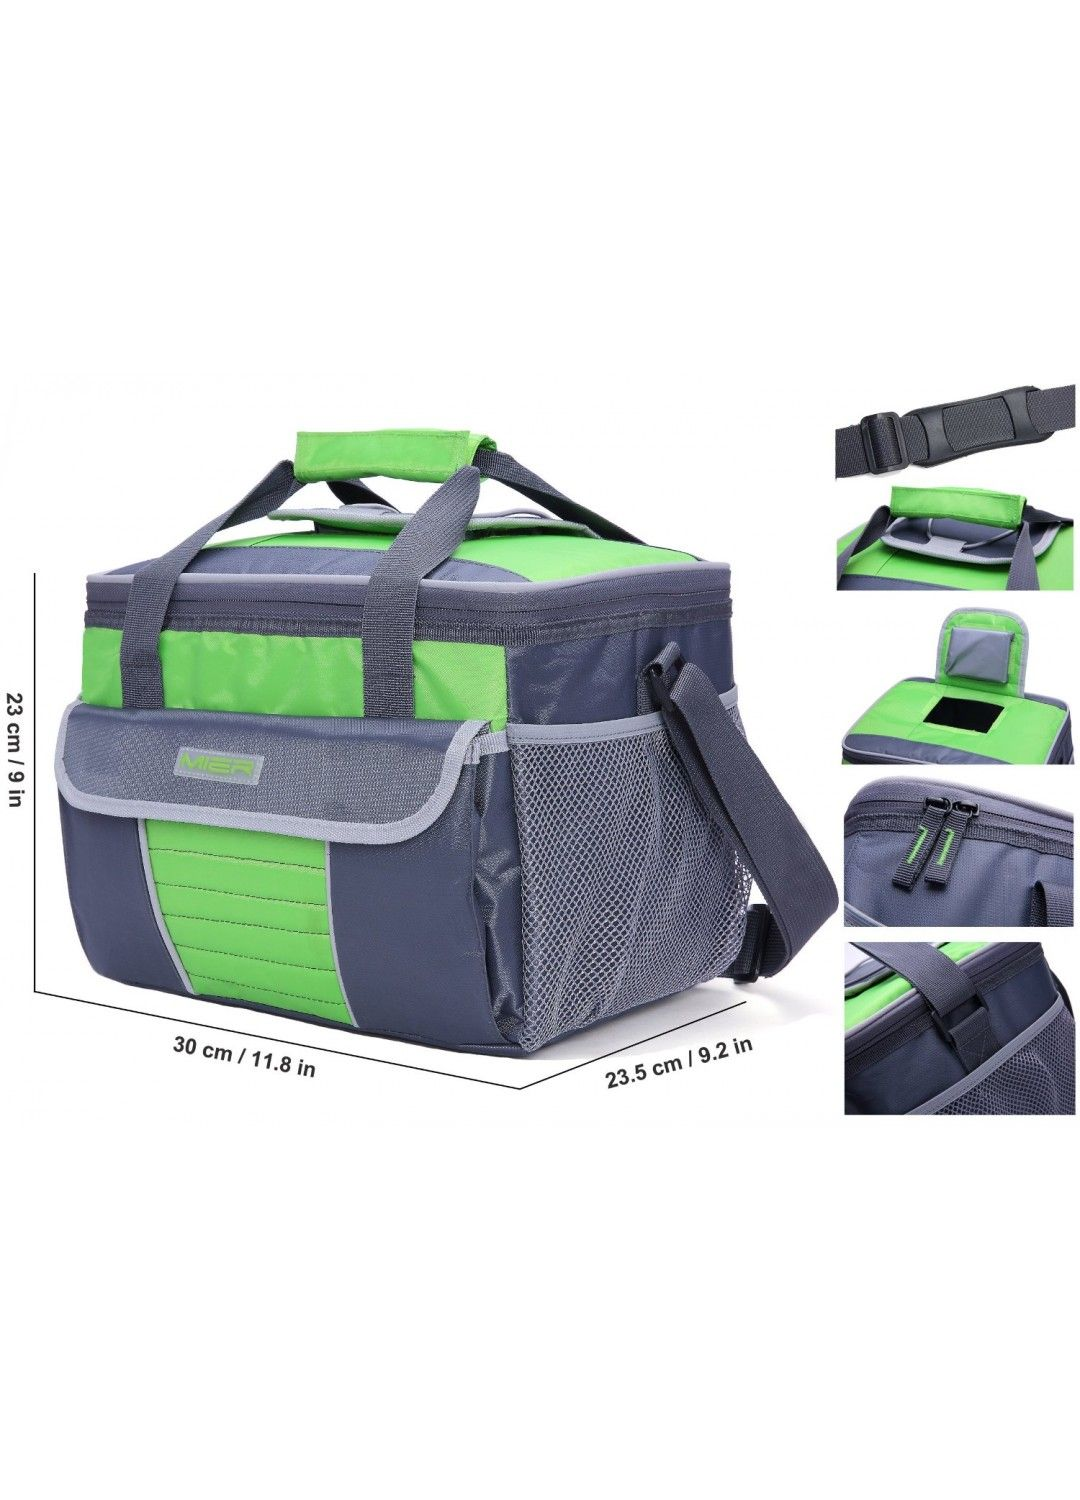 Mier Large Soft Cooler Bag Insulated Lunch Box Bag Picnic Cooler Tote With Dispensing Lid Multiple Pockets Cooler Bag Lunch Box Bag Cooler Tote